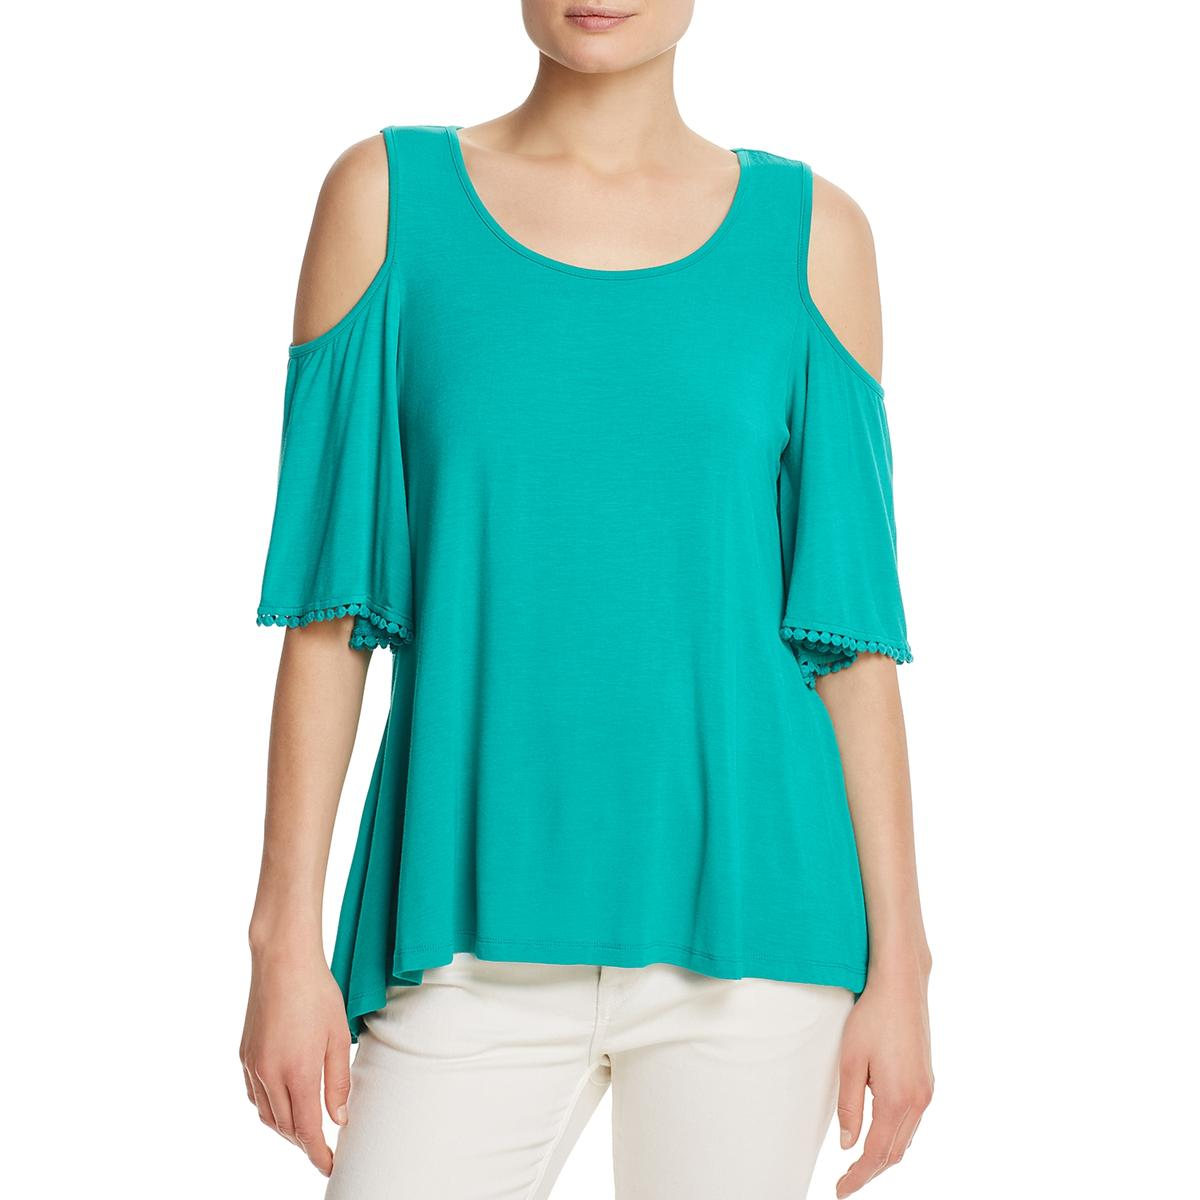 e9e5ef9d151dc8 Details about Cupio Womens Green Crochet Trim Cold Shoulder Casual Shirt Top  L BHFO 5698